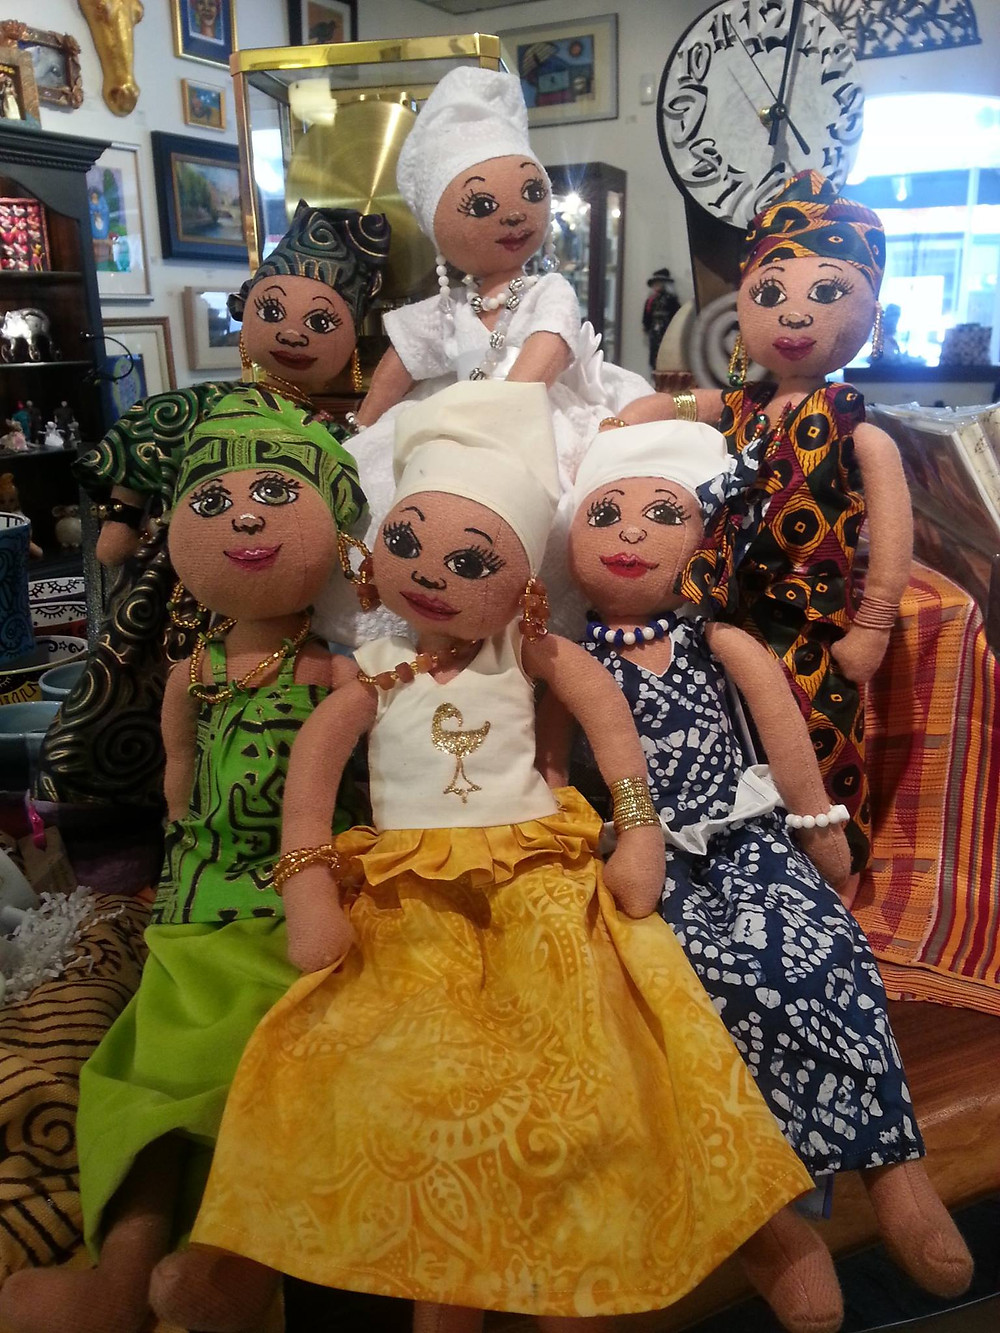 Dolls by Kimberly Camp